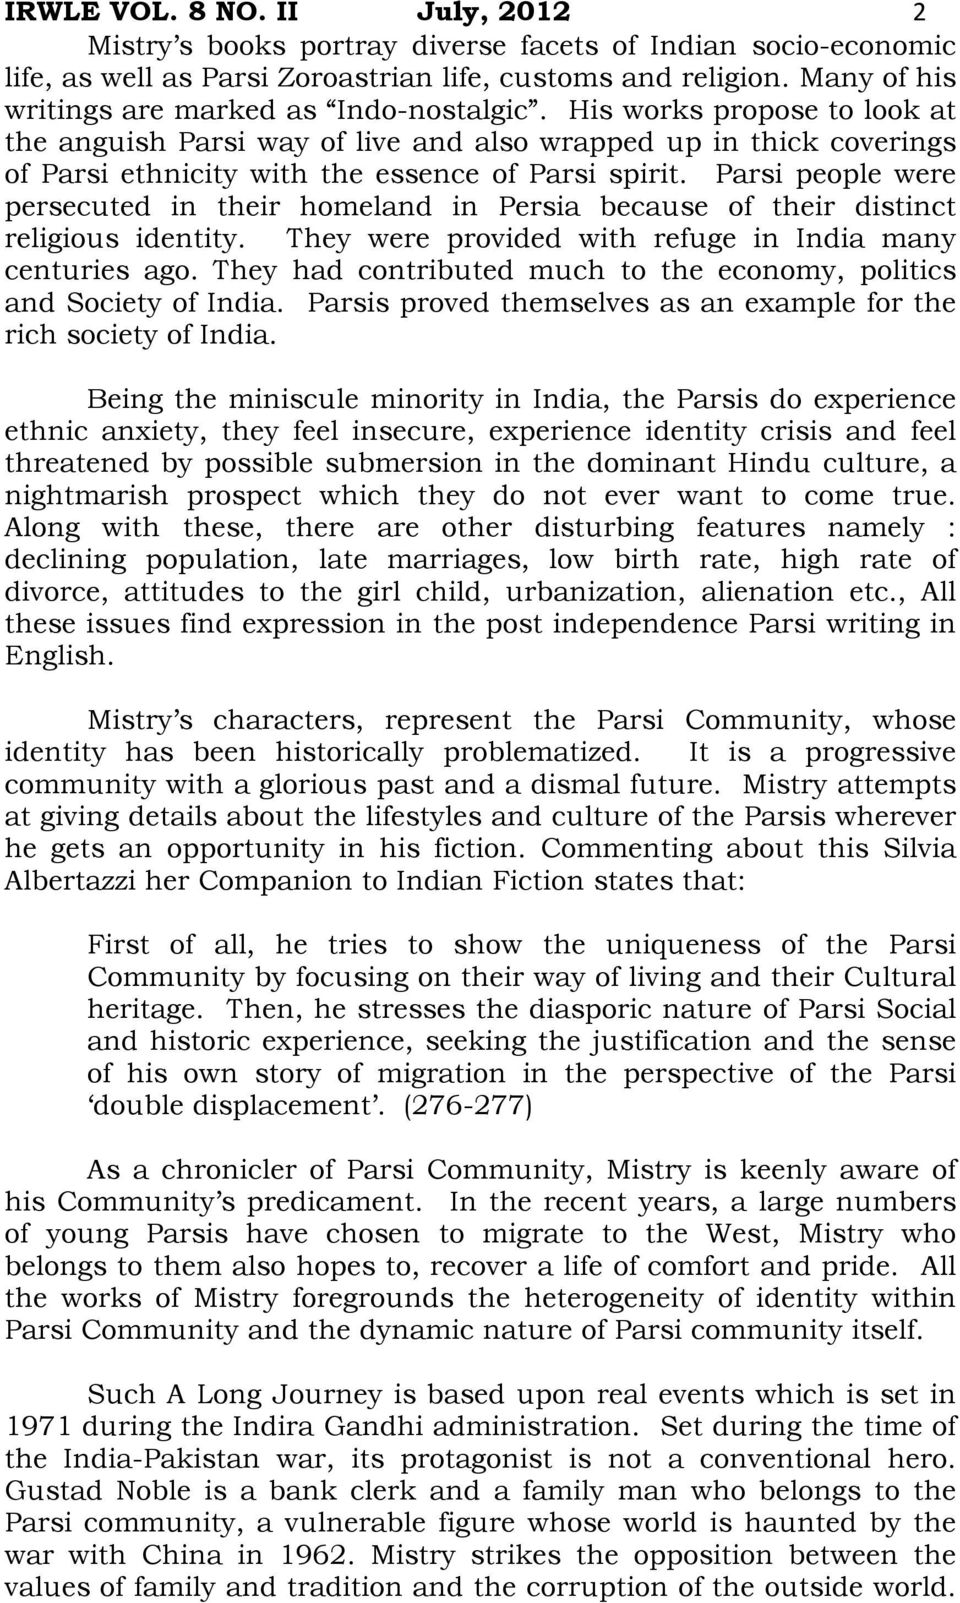 His works propose to look at the anguish Parsi way of live and also wrapped up in thick coverings of Parsi ethnicity with the essence of Parsi spirit.